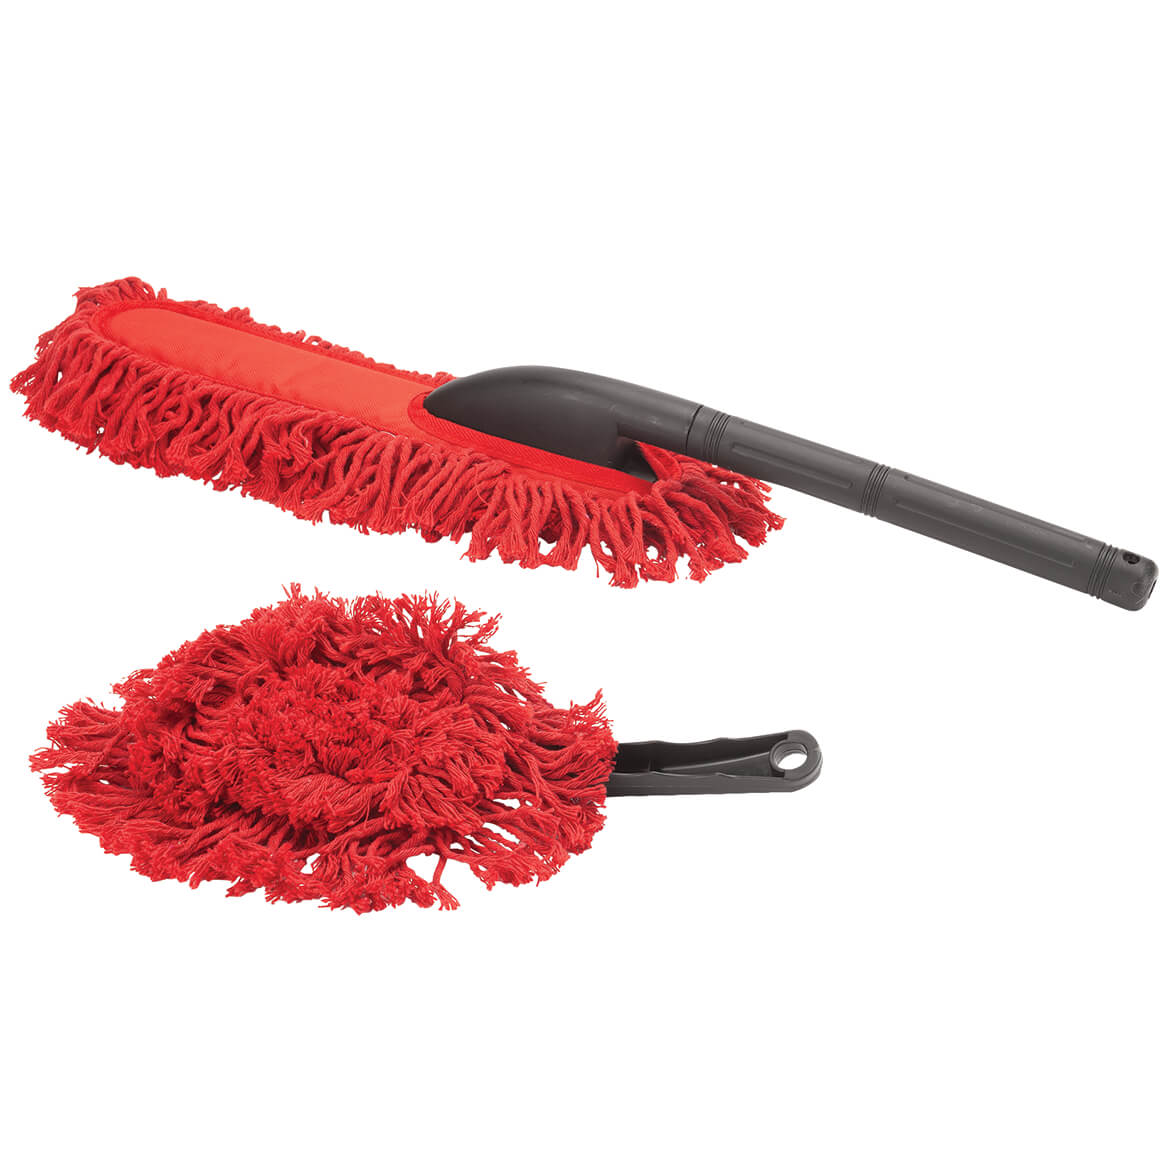 Wax Infused Car Dusters, Set of 2-371800